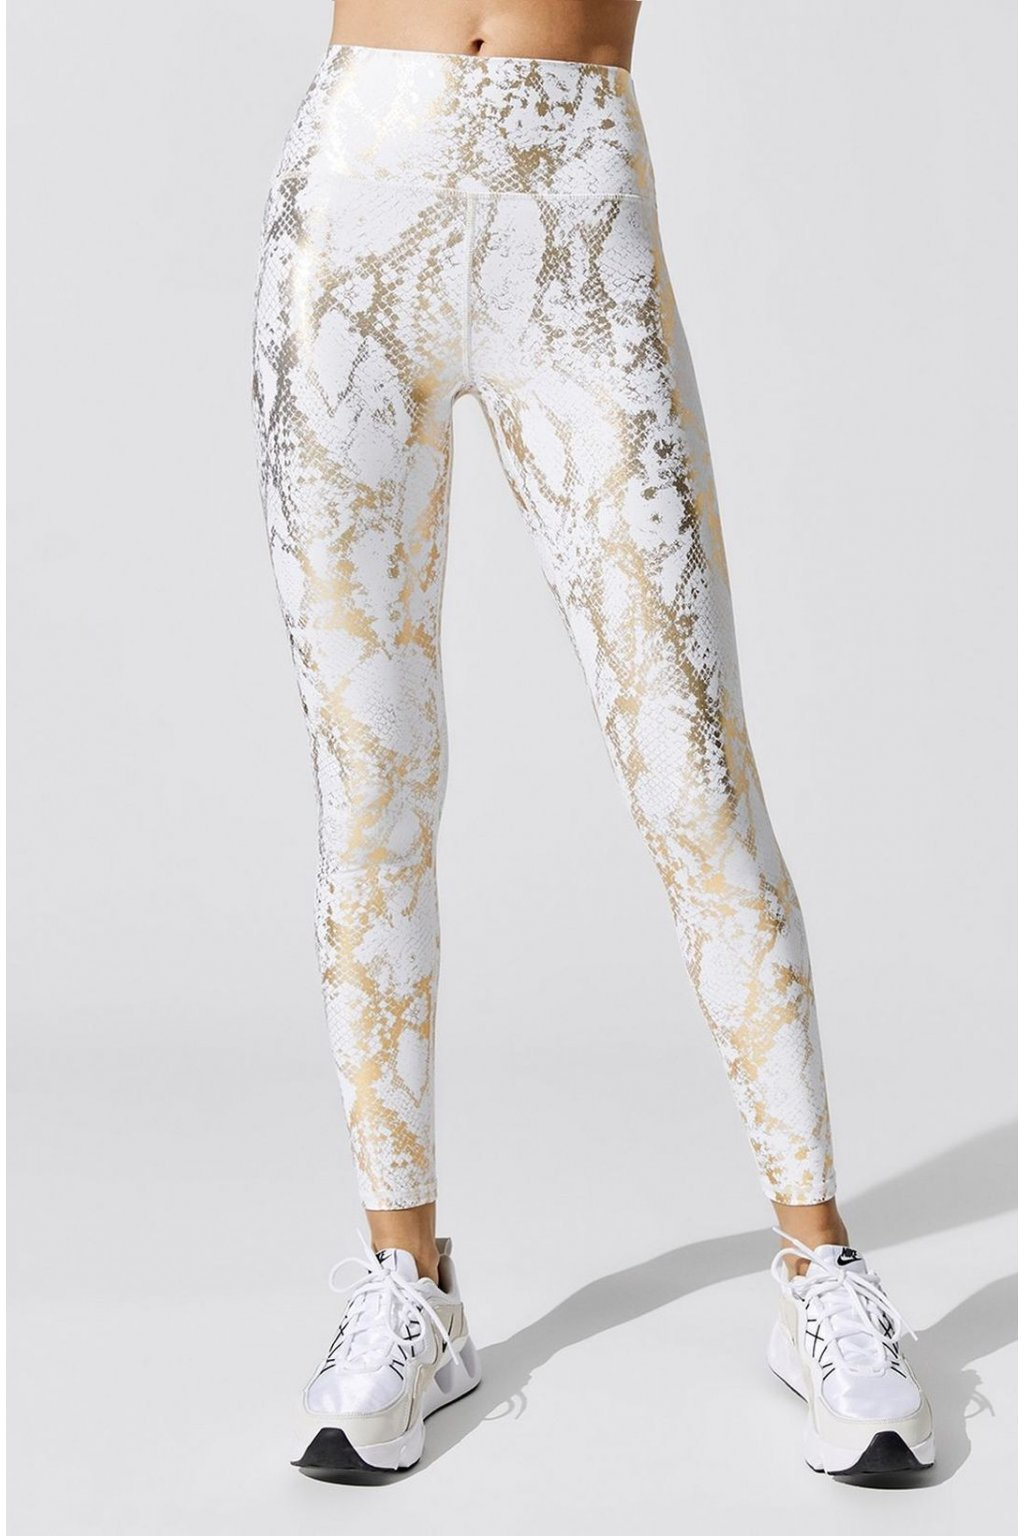 carb crb19331d snawhi carbon38 snake print legging bottoms cream gold 0003